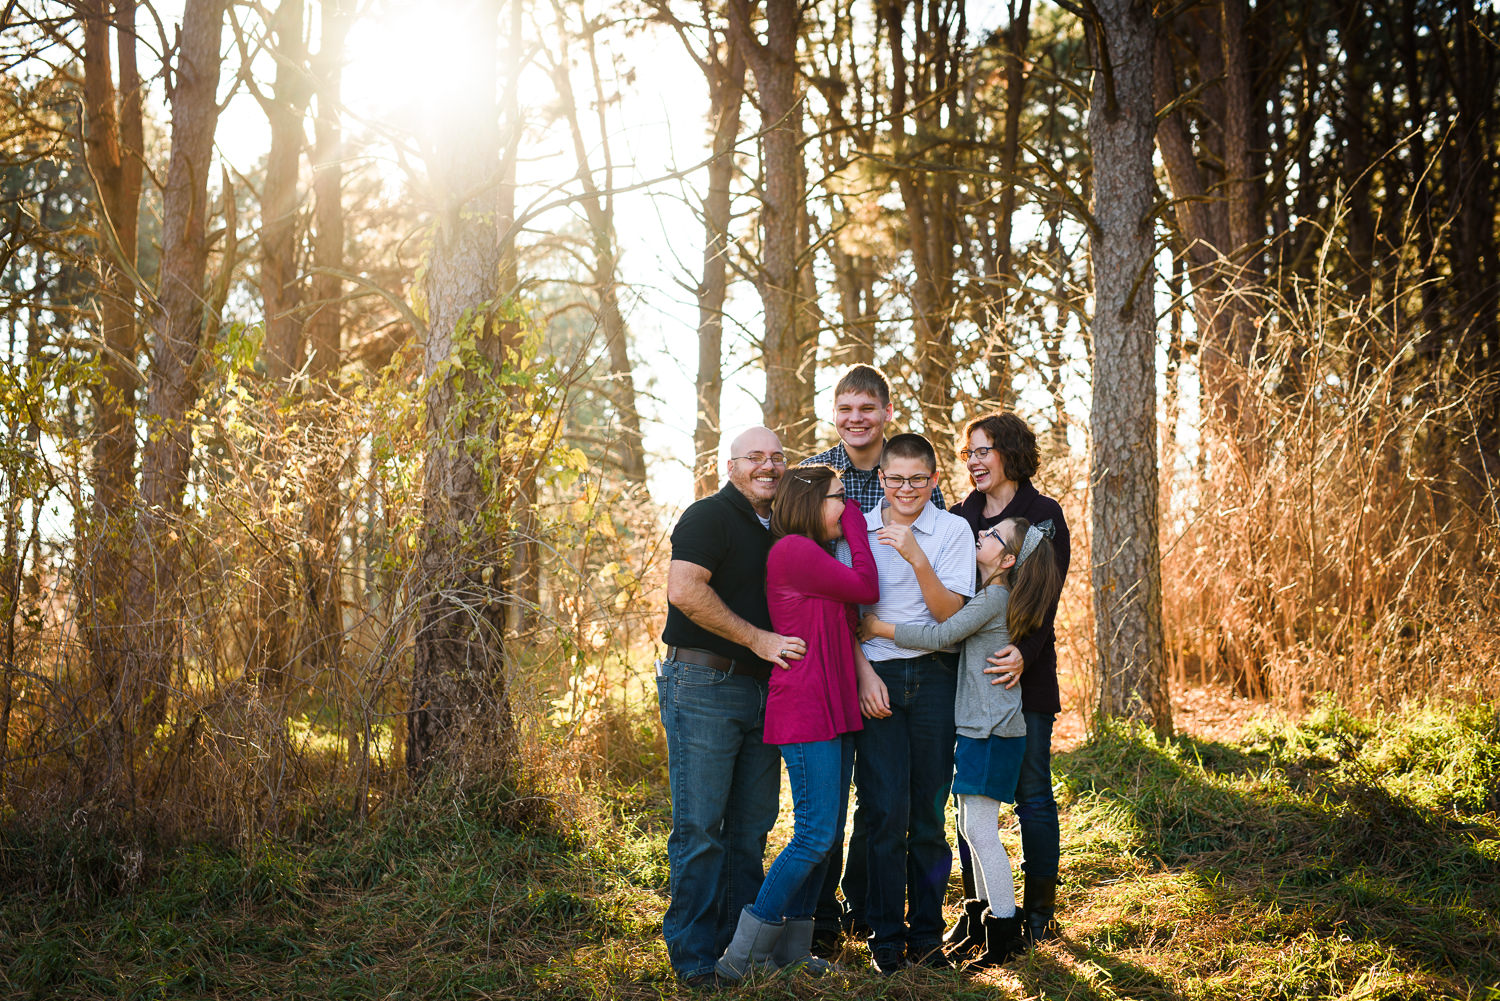 Misty-Prochaska-Lincoln-Nebraska-family-photographer-family-sessions-33.jpg